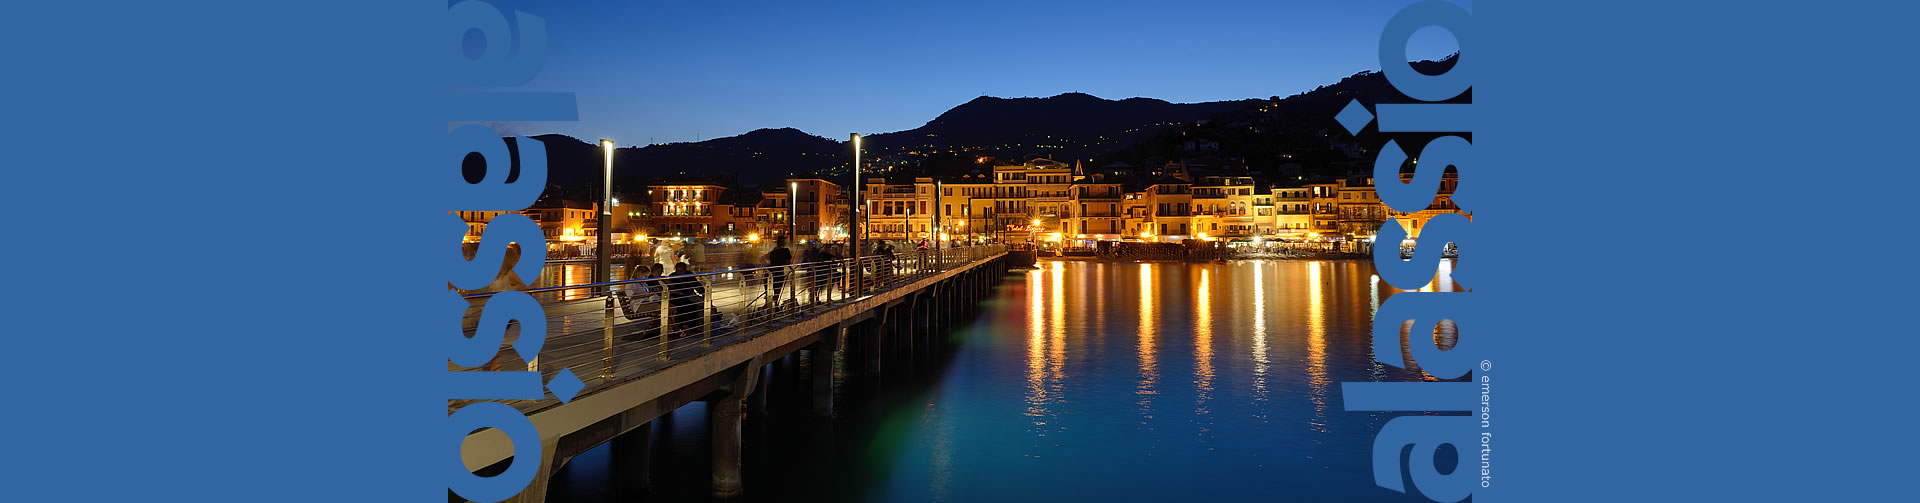 Alassio and its pier